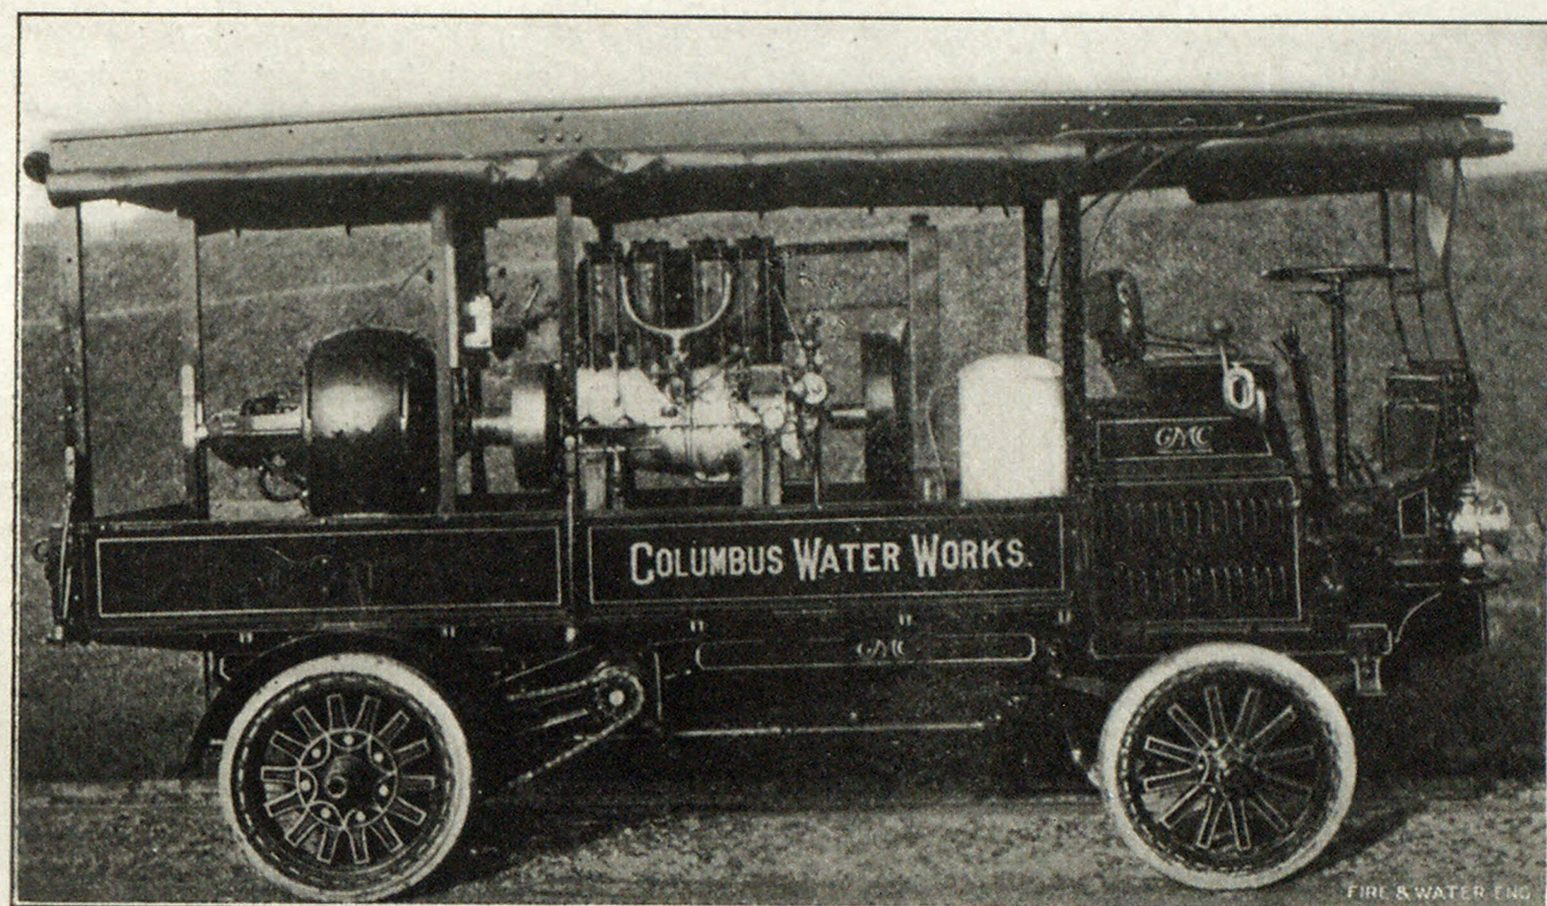 GASOLINE ELECTRIC MOTOR CAR IN USE AT COLUMBUS WATER PURIFICATION PLANT